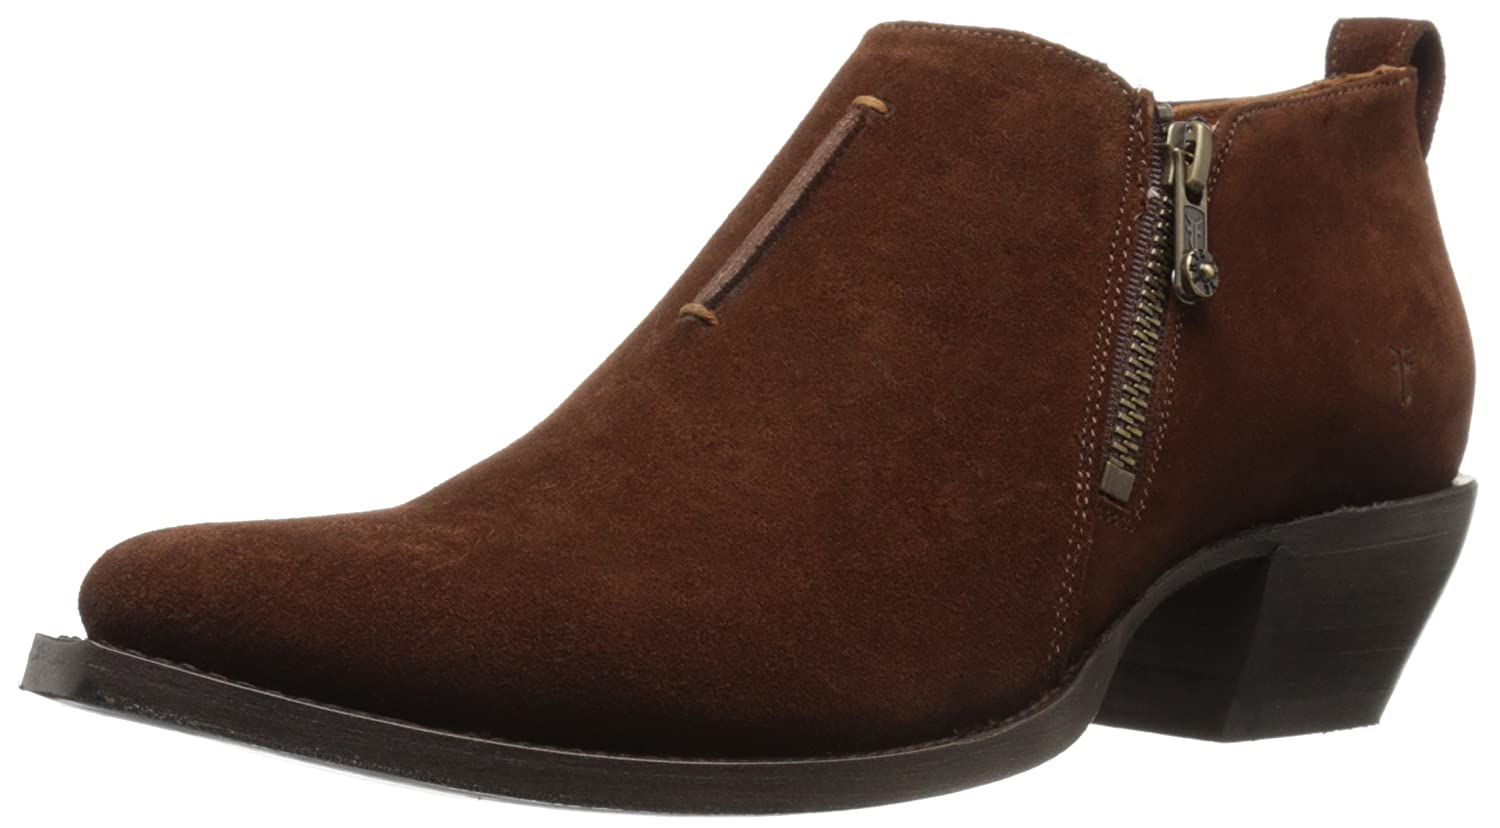 FRYE Women's Sacha Moto Shootie Suede Boot B01944BB6O 7 B(M) US|Brown